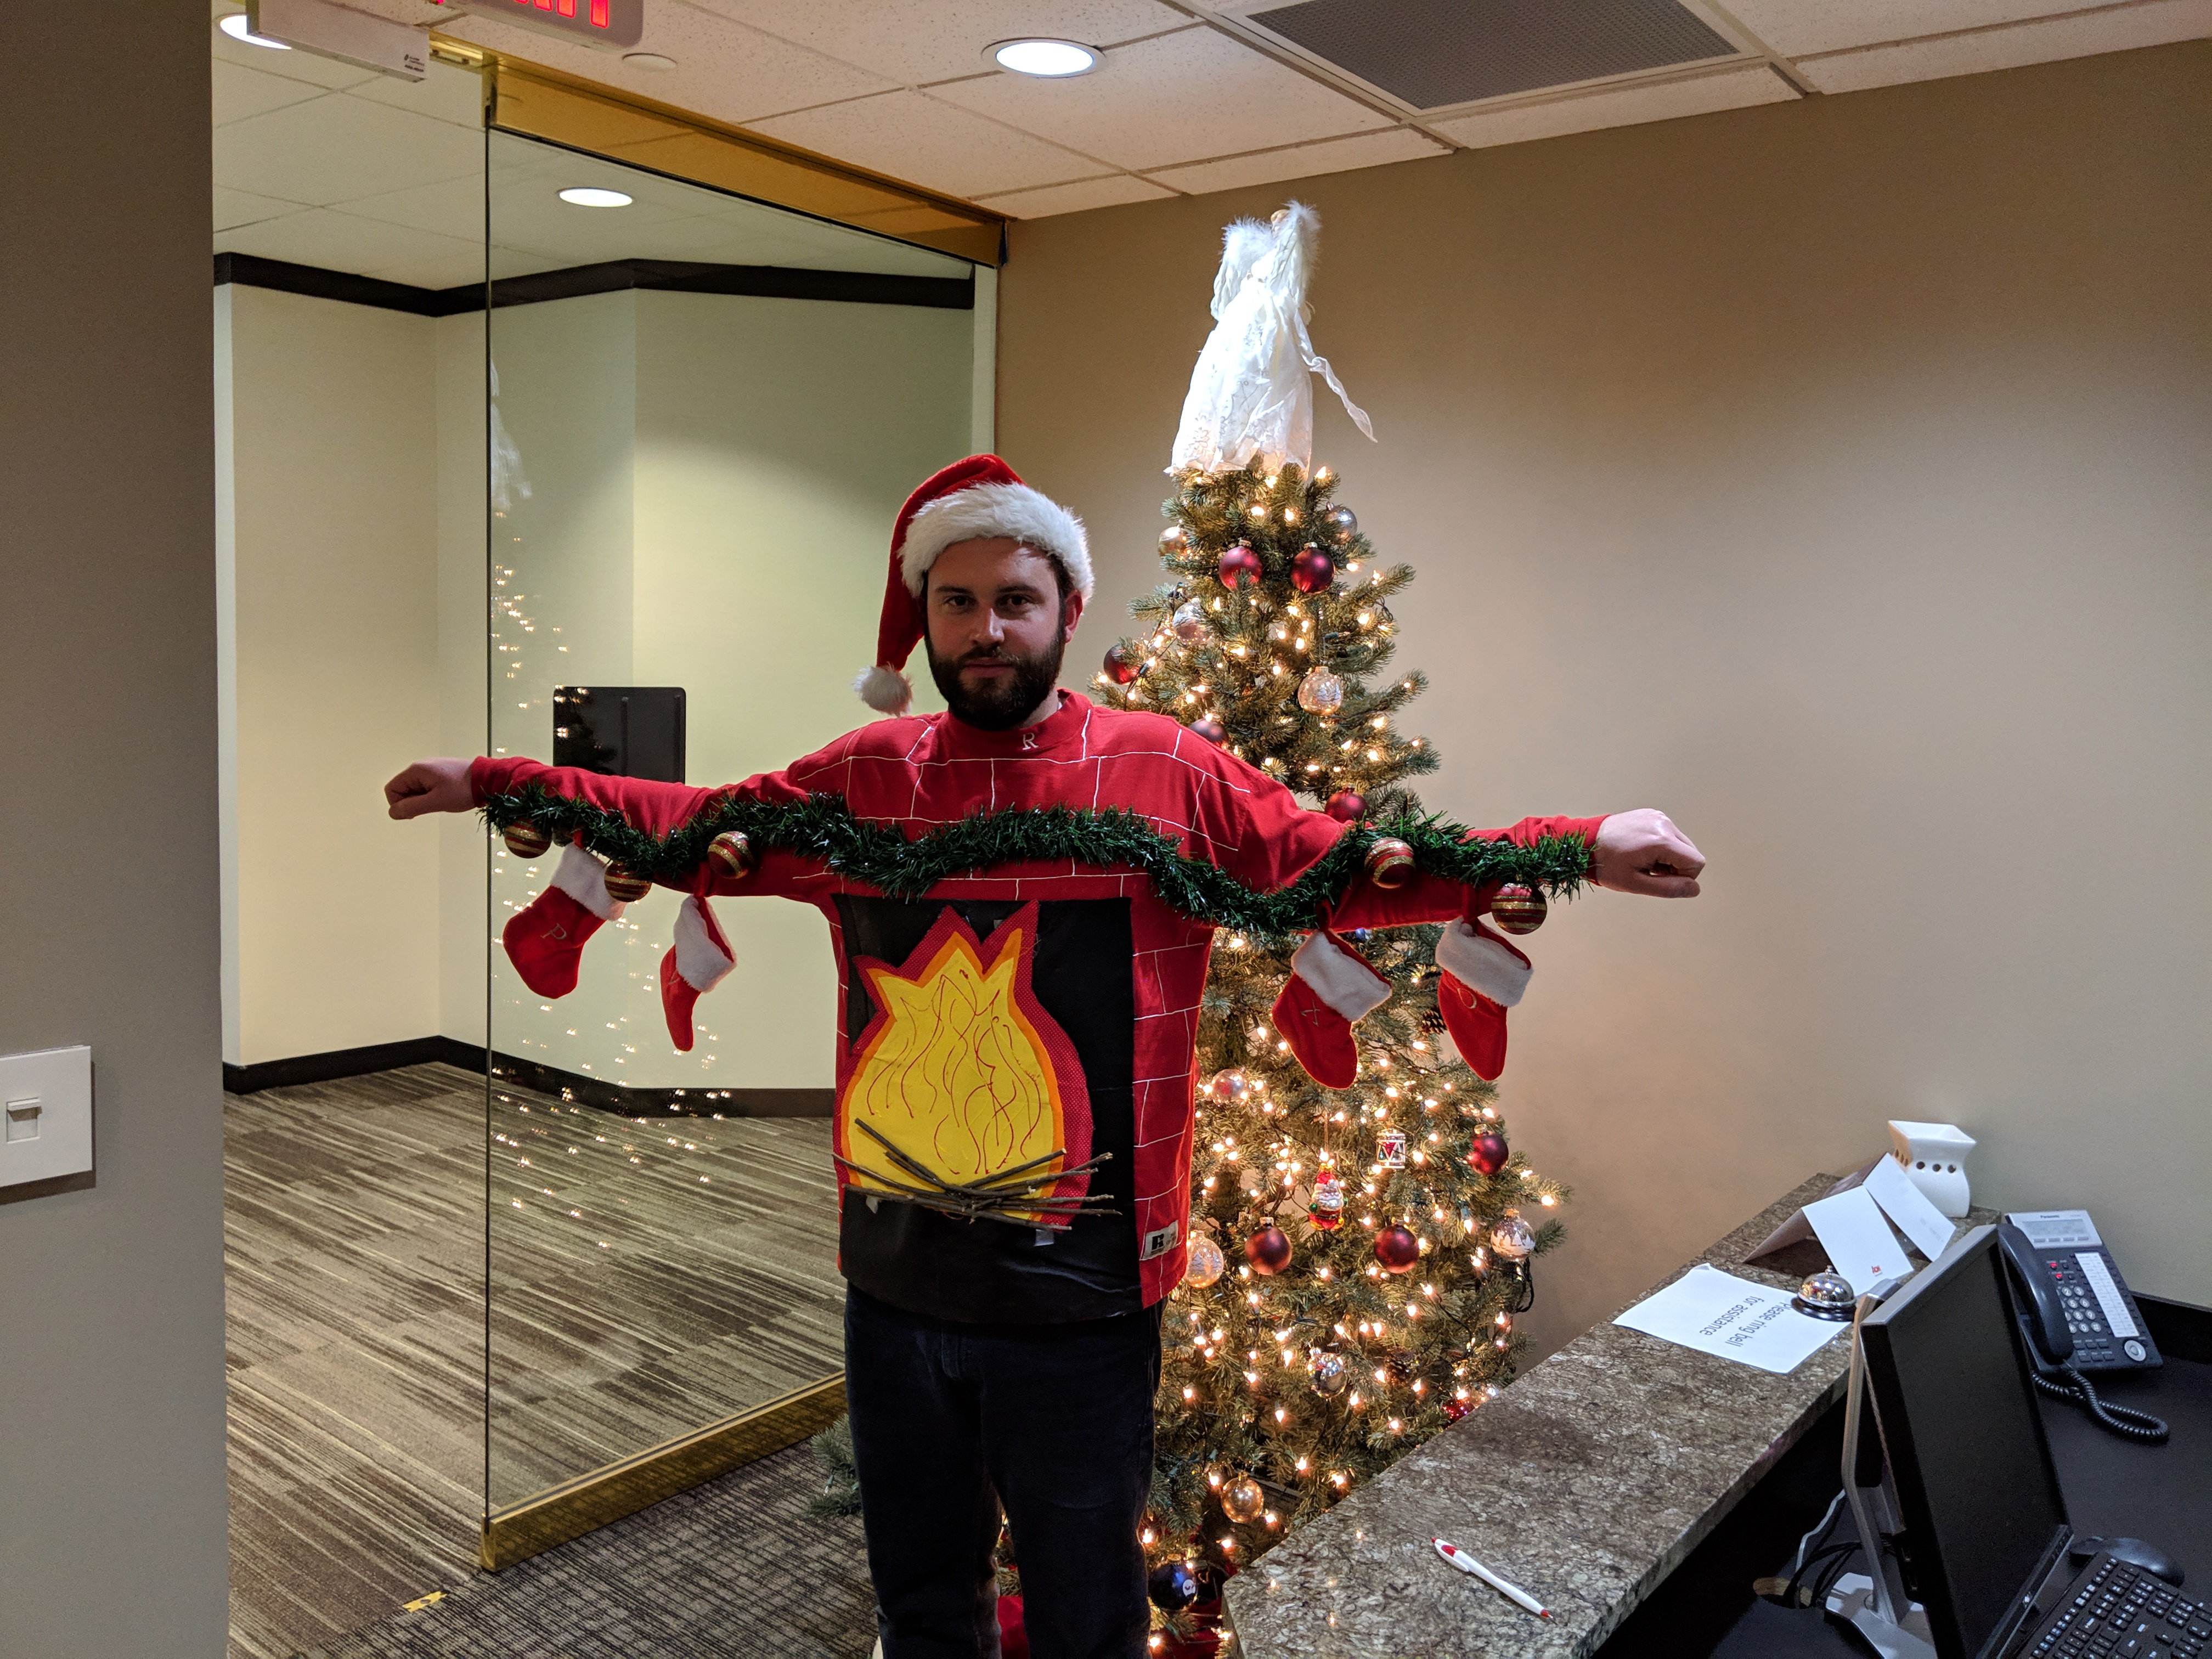 Ugly-sweater-excellence